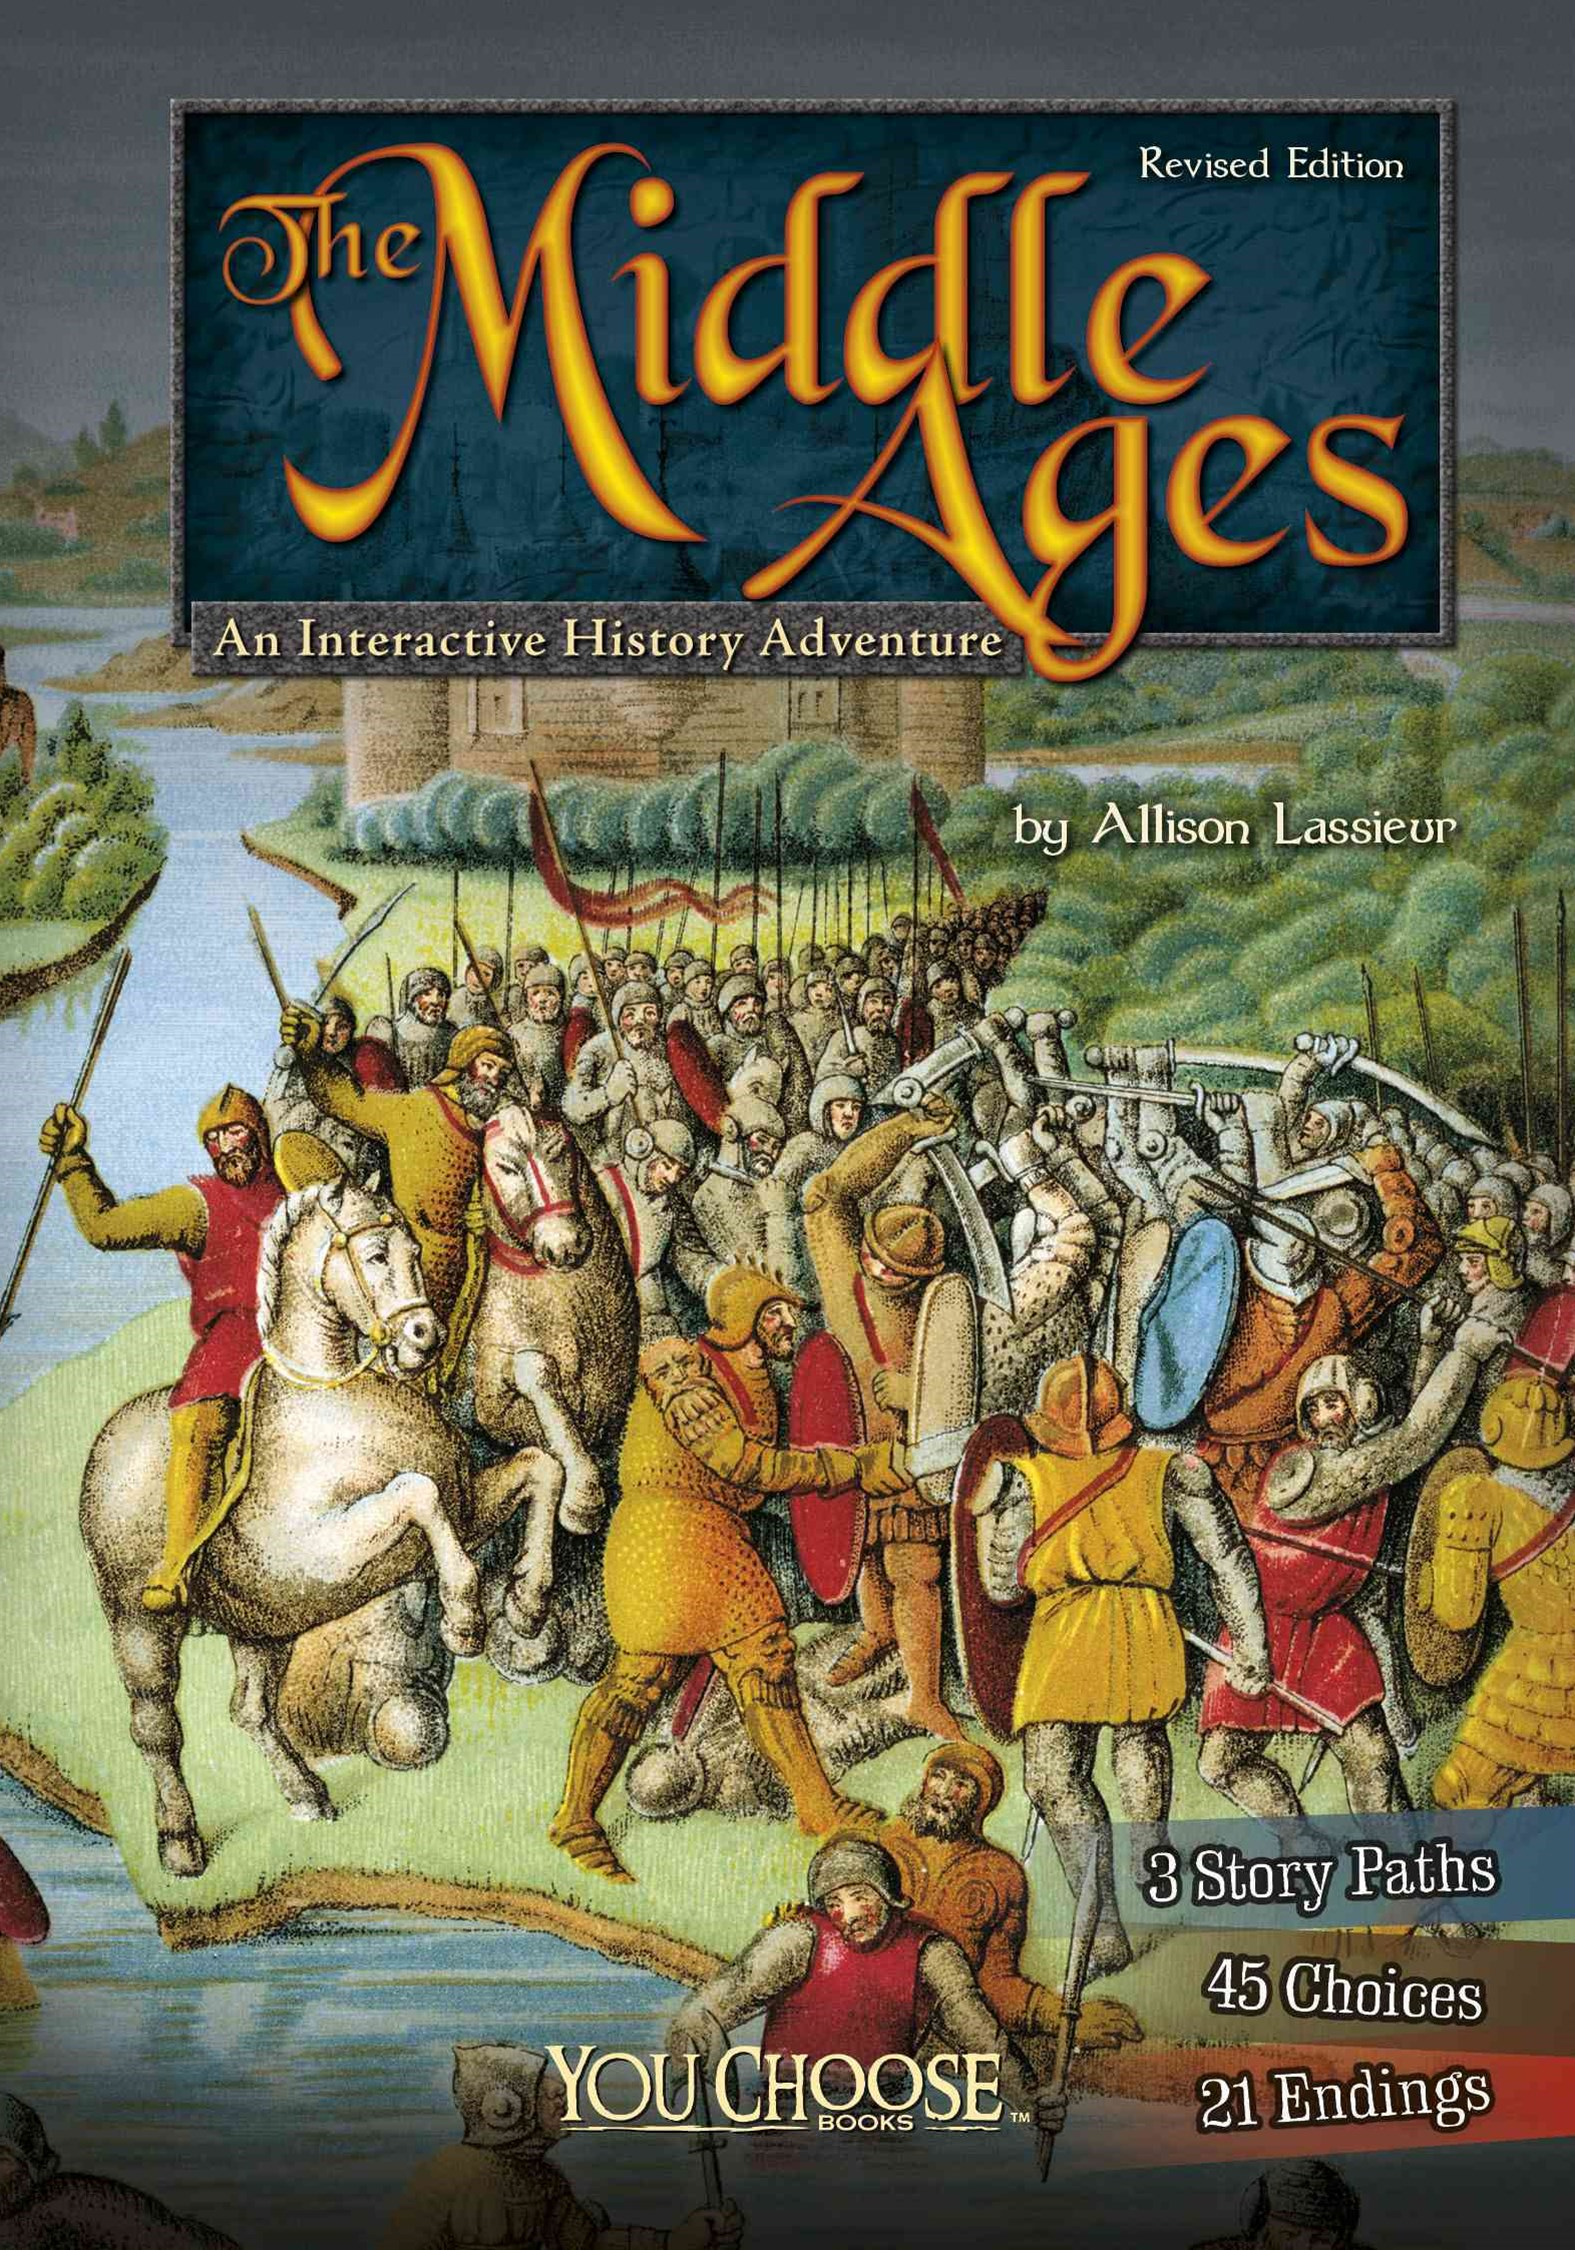 The Middle Ages